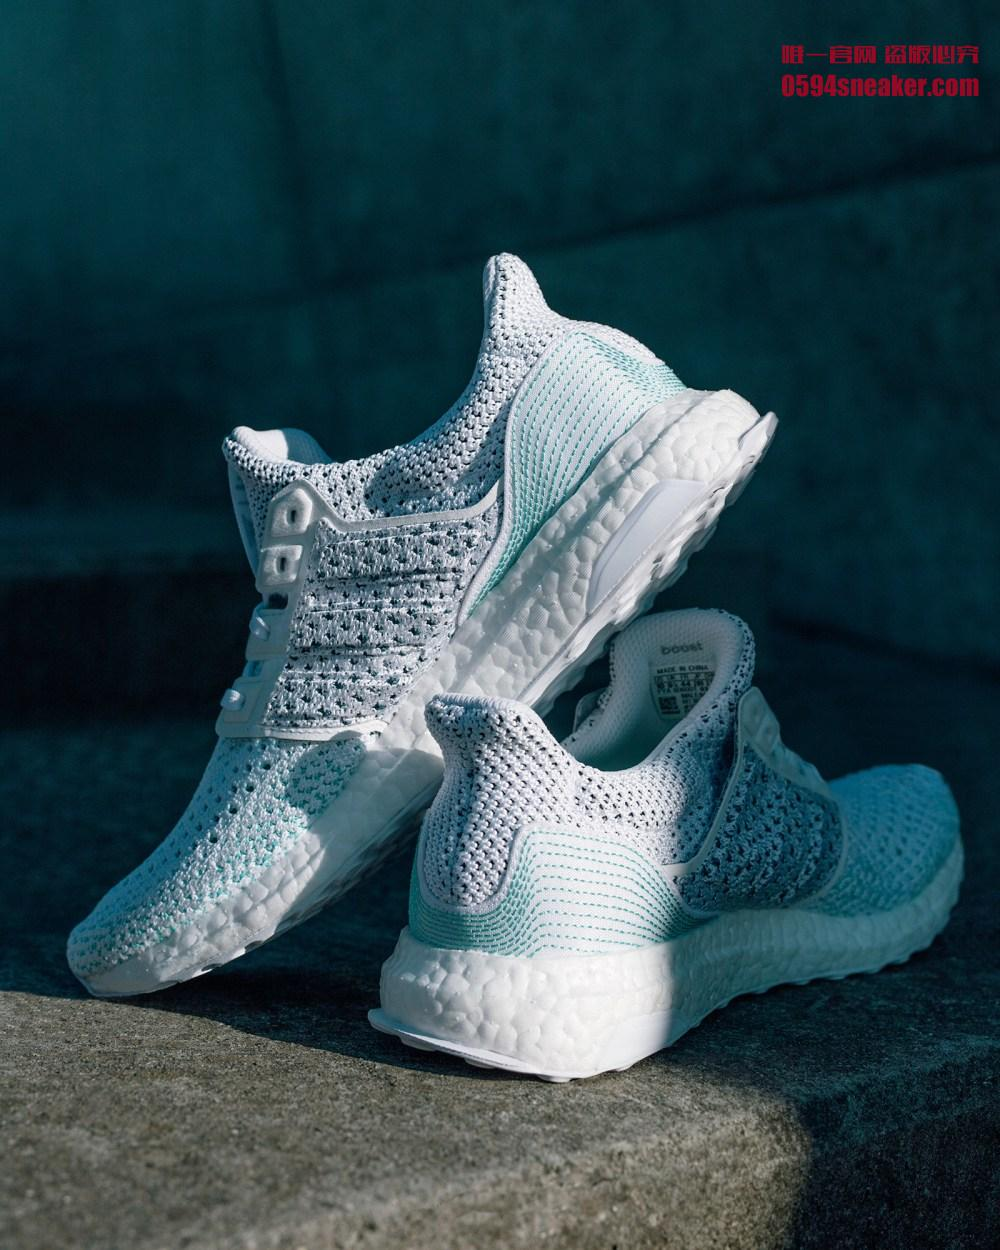 adidas,Ultra Boost,Parley  夏季清爽配色!海洋联名 Parley x adidas Ultra Boost LTD 发布!